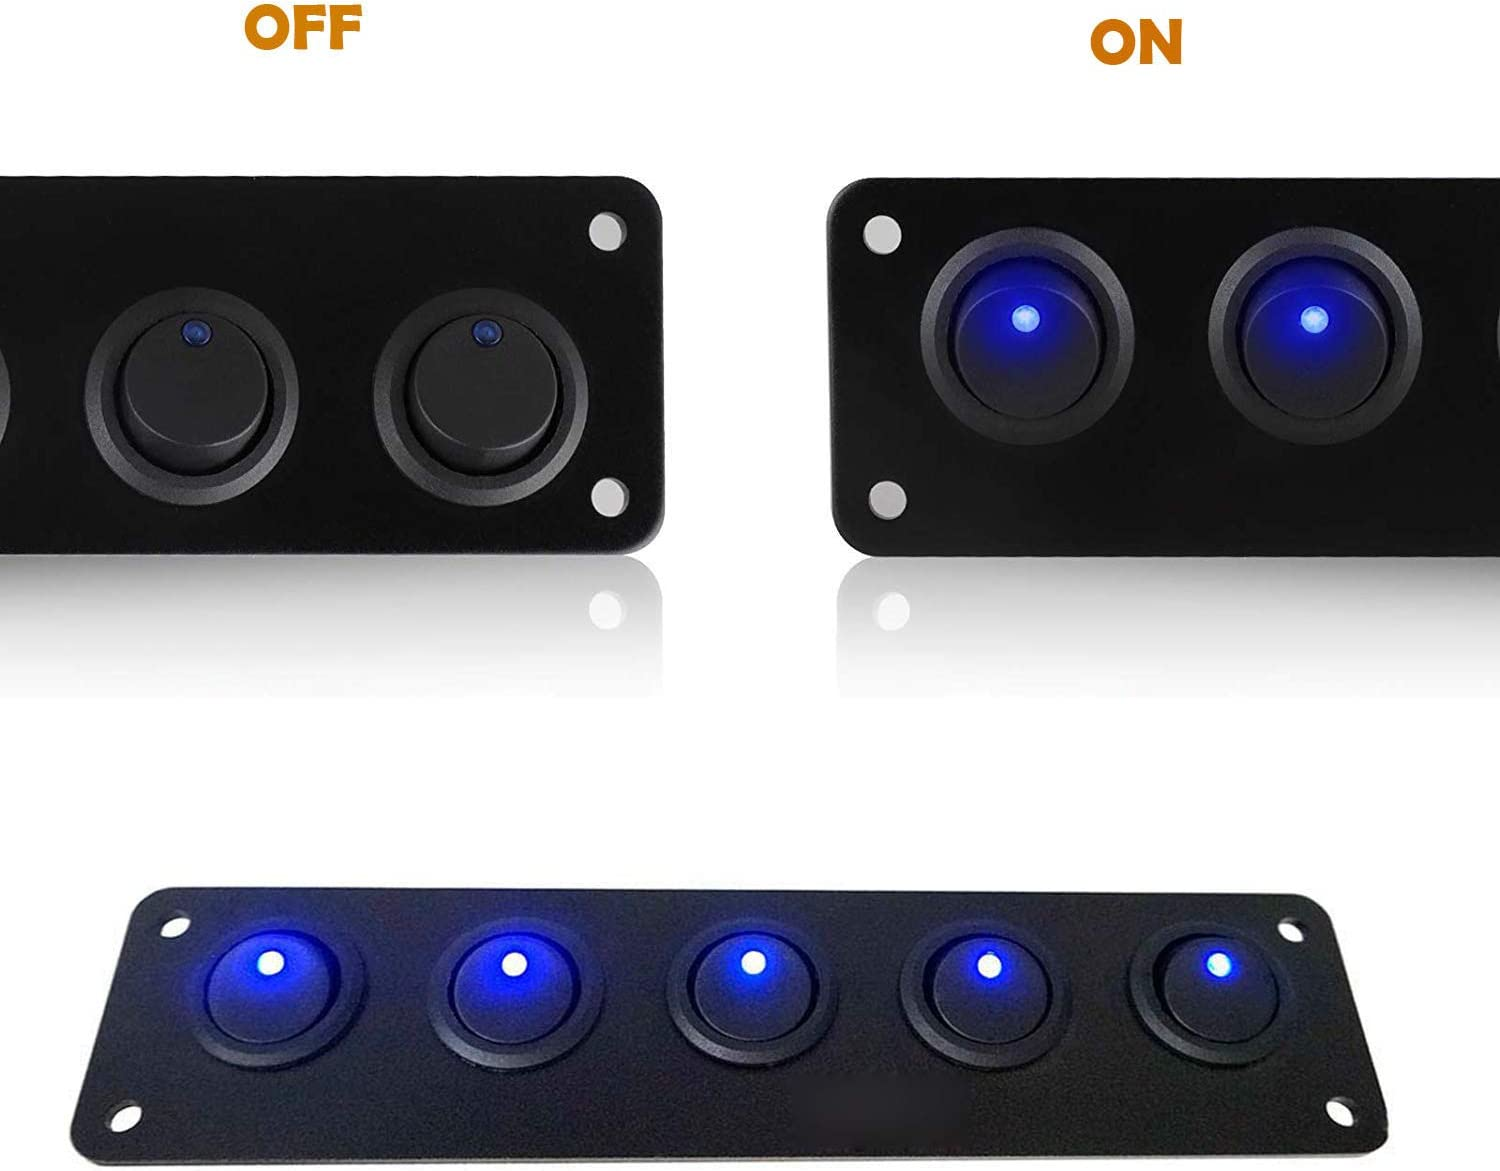 VonSom 12V Rocker Switch Panel Circuit Breaker Waterproof 5 Gang 3 Pin On//Off Toggle LED Switches for RV Marine Car Vehicle Trailer Truck SUV Boat RV Ship DC 12V//24V 20A